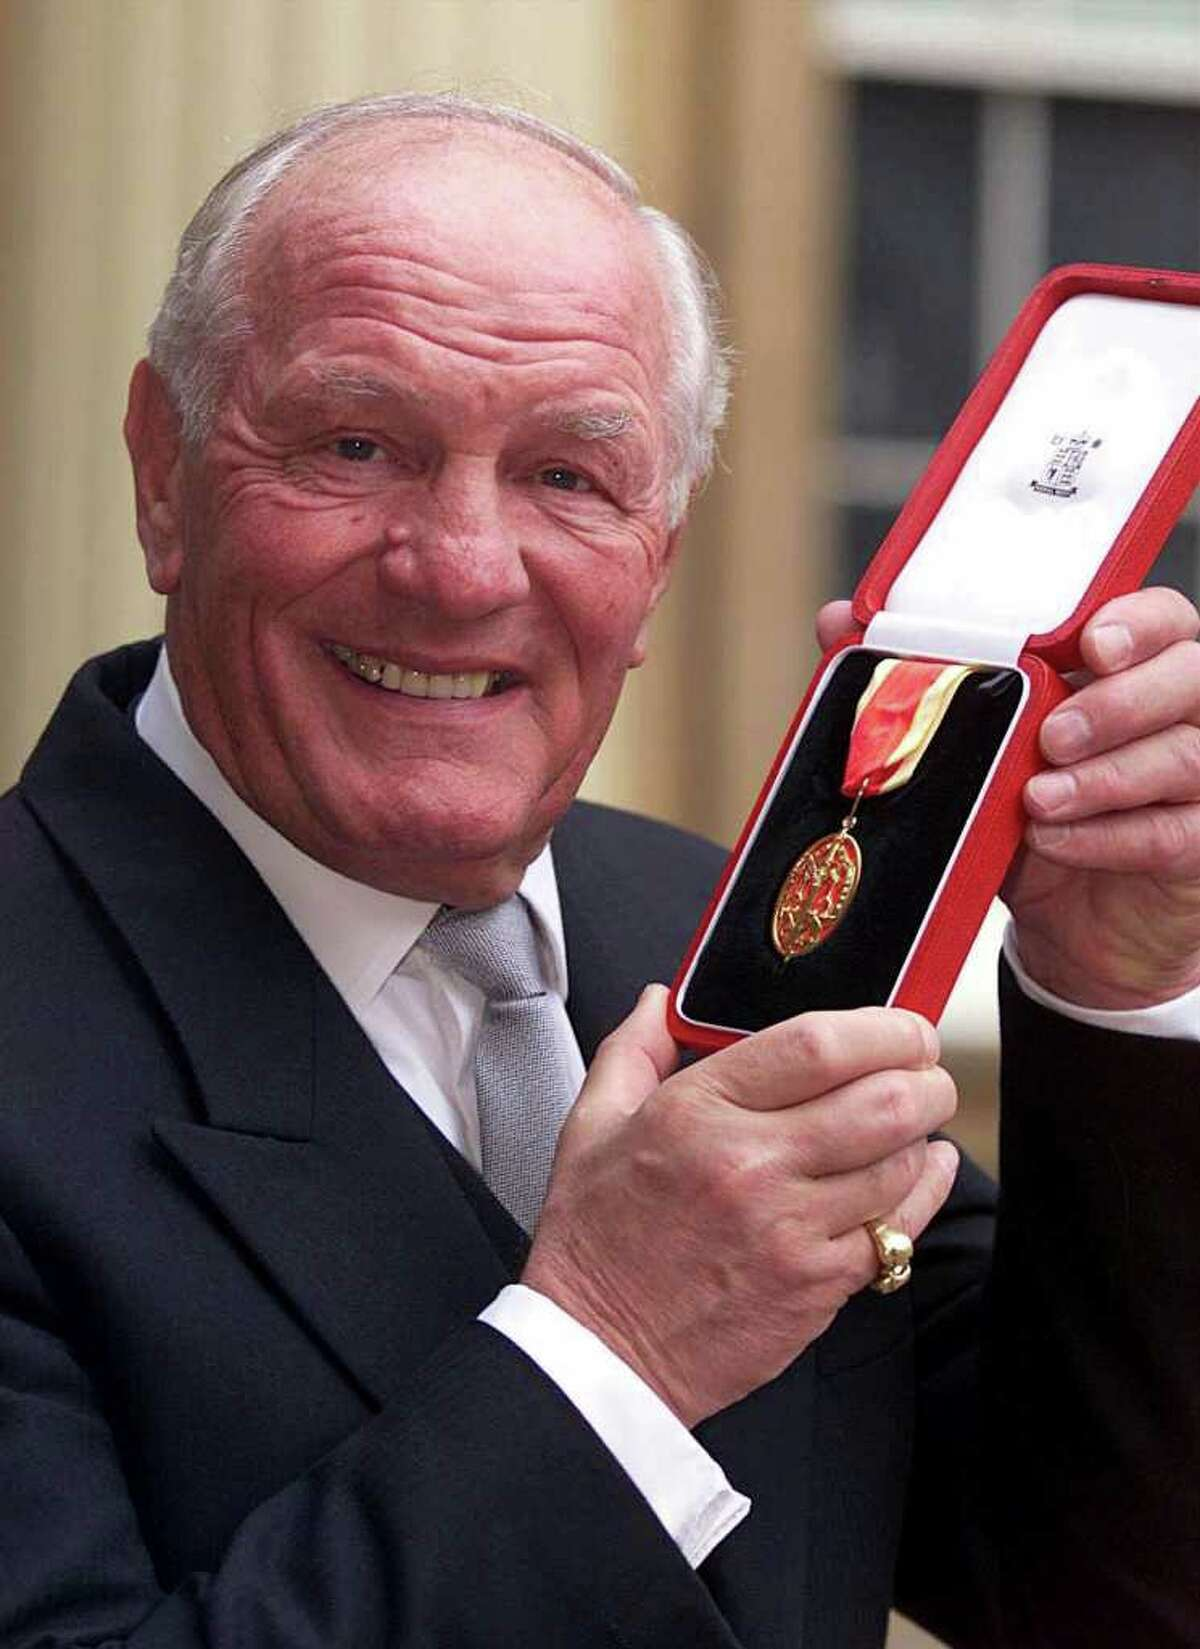 FILE - This Tuesday Feb. 22, 200 photo from files shows former British and European heavyweight boxing champion Sir Henry Cooper after receiving his knighthood at an investiture ceremony at Buckingham Palace in London. Sir Henry has died aged 76, sources told Britain's Press Association Sunday May 1, 2011. He was well known for two famous clashes with Muhammad Ali in the 1960's flooring Ali in the 4th round of a 1963 non-title fight at London's Wembley, though Ali eventually won the fight. He fought Ali again in 1966 but was again beaten. (AP Photo/Richard Pohle, Pool)